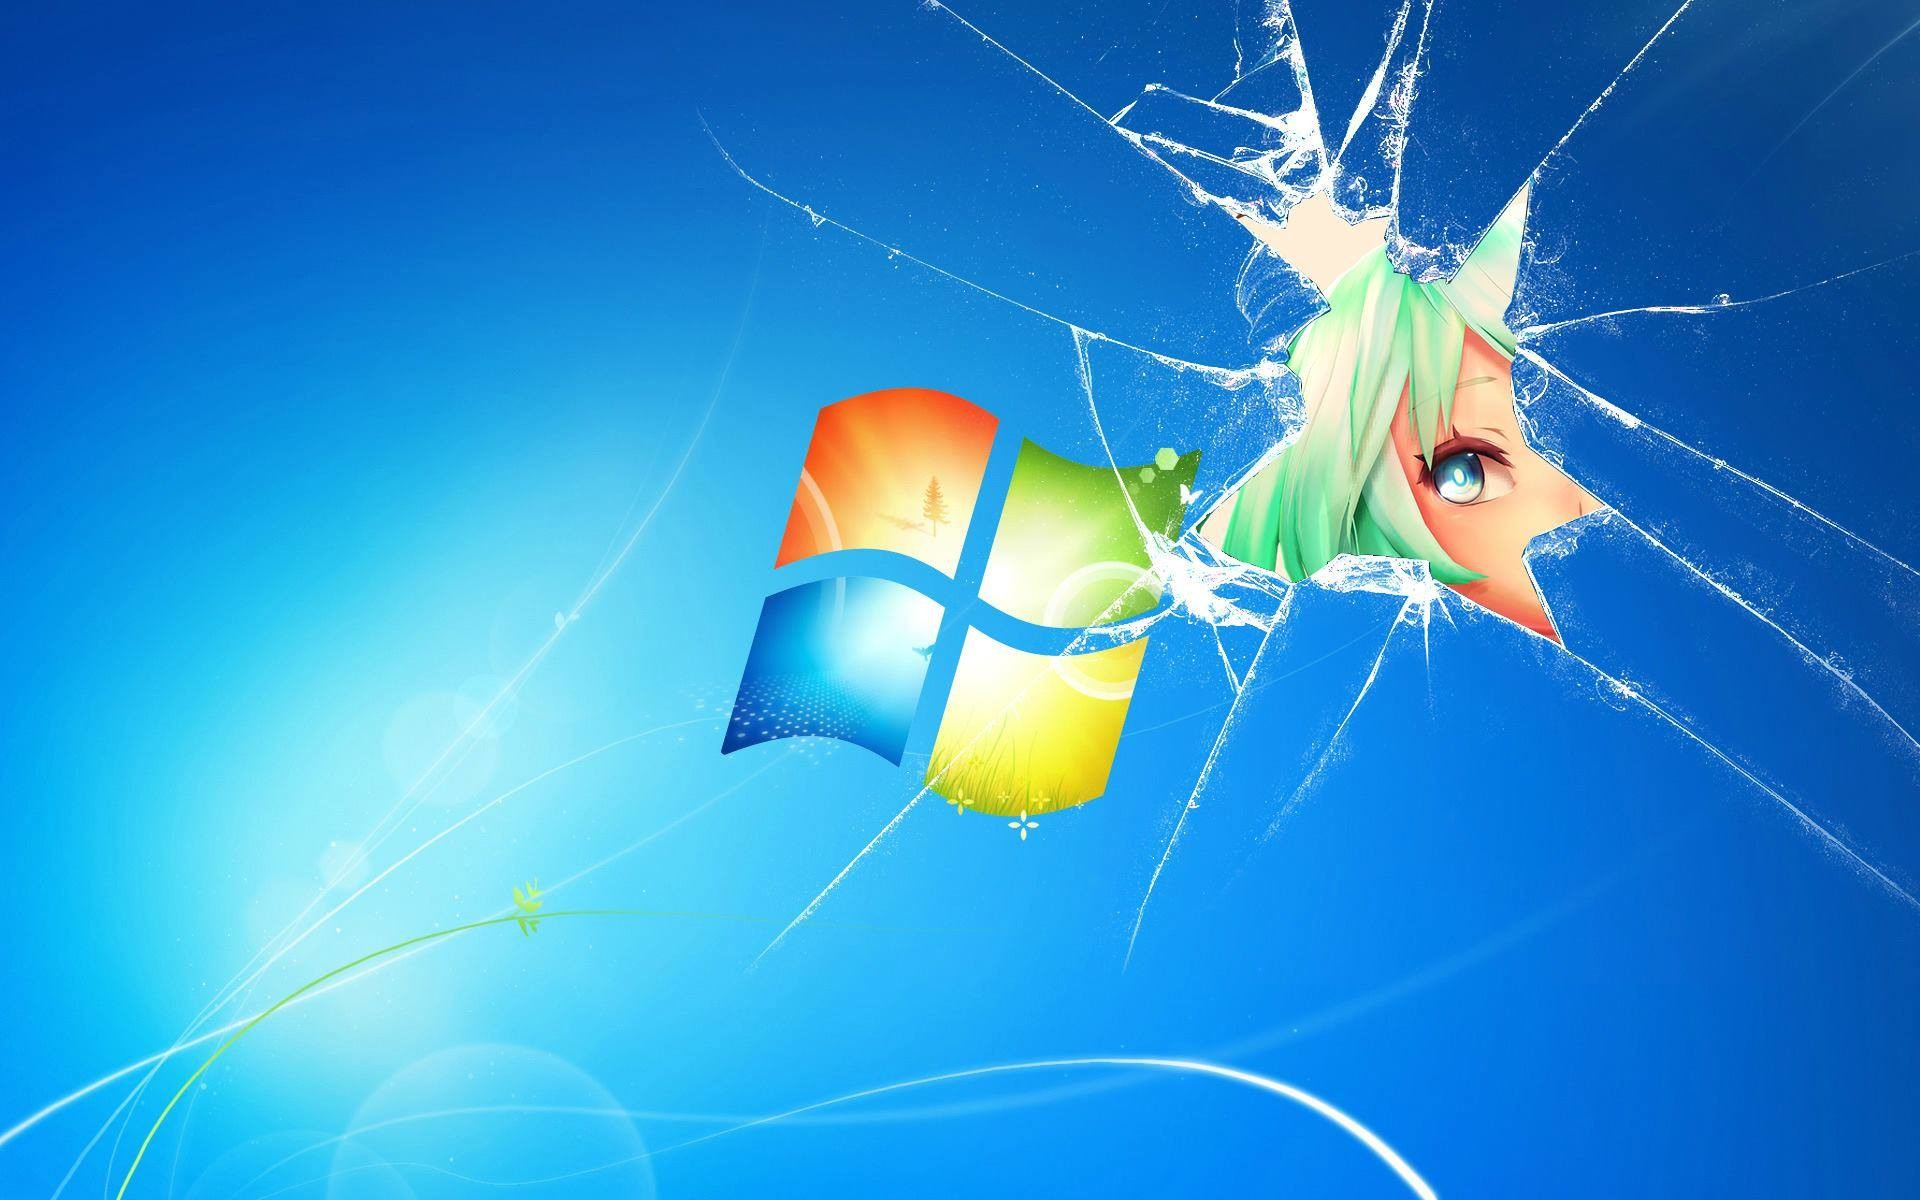 Windows 8 Lock Screen Wallpapers 74 Images